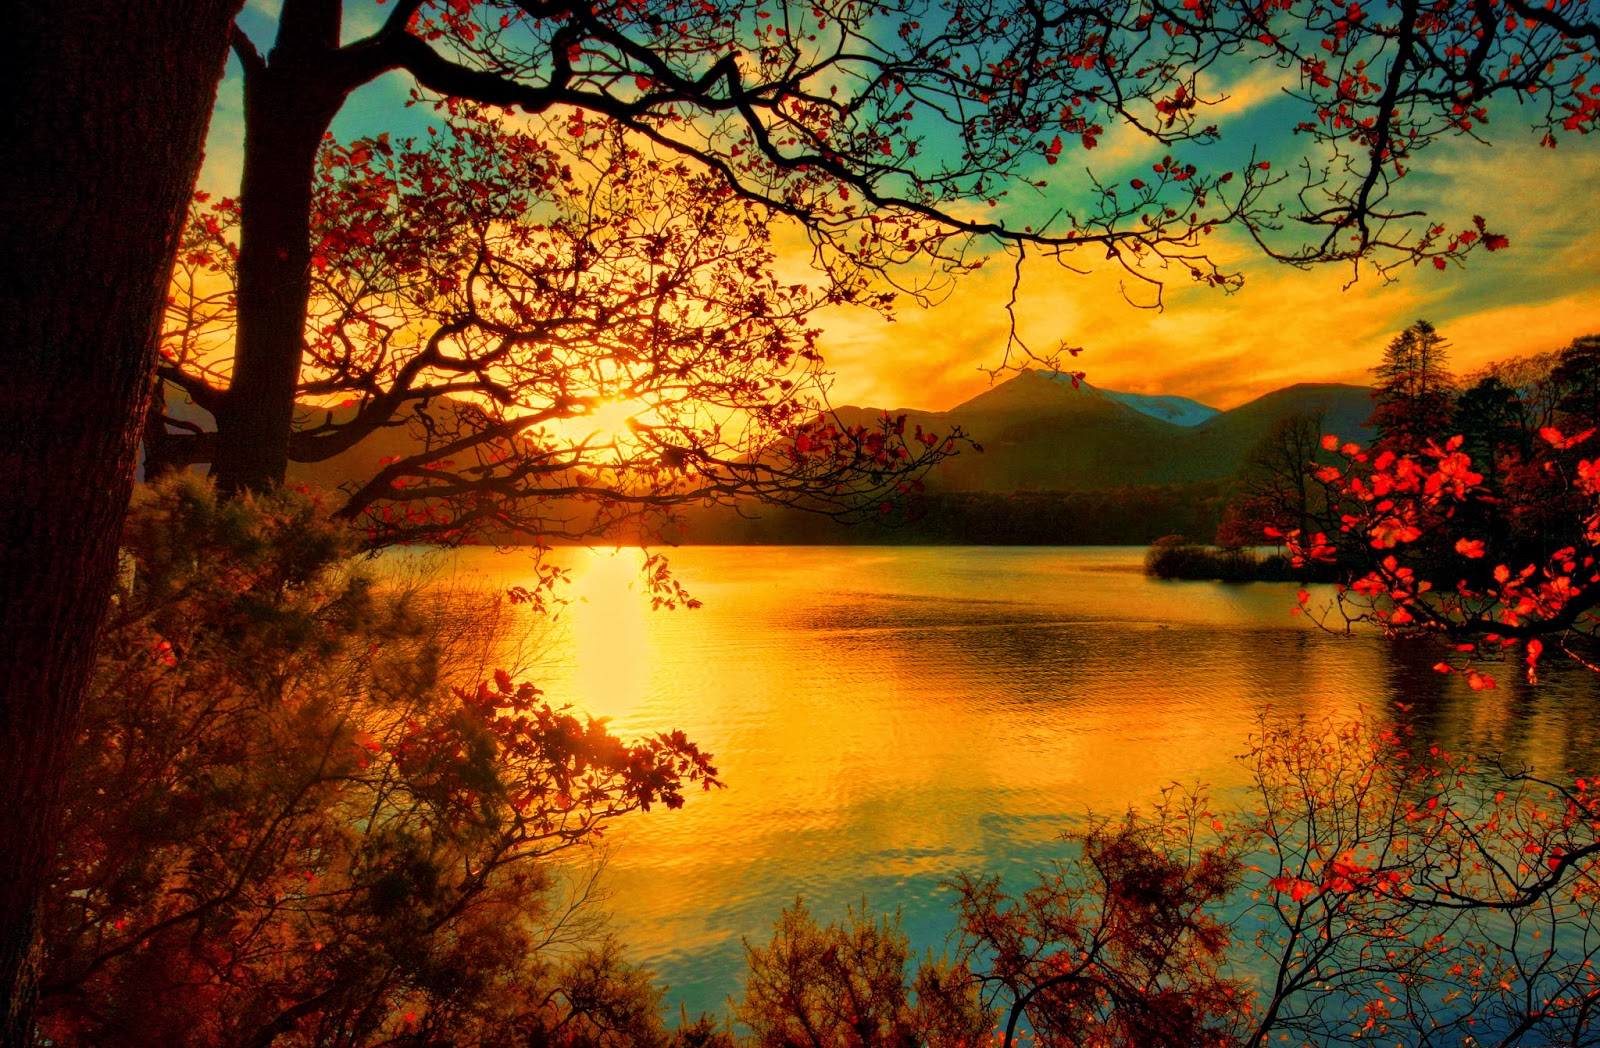 Free Download Wallpapers For Desktop Most Beautiful Places